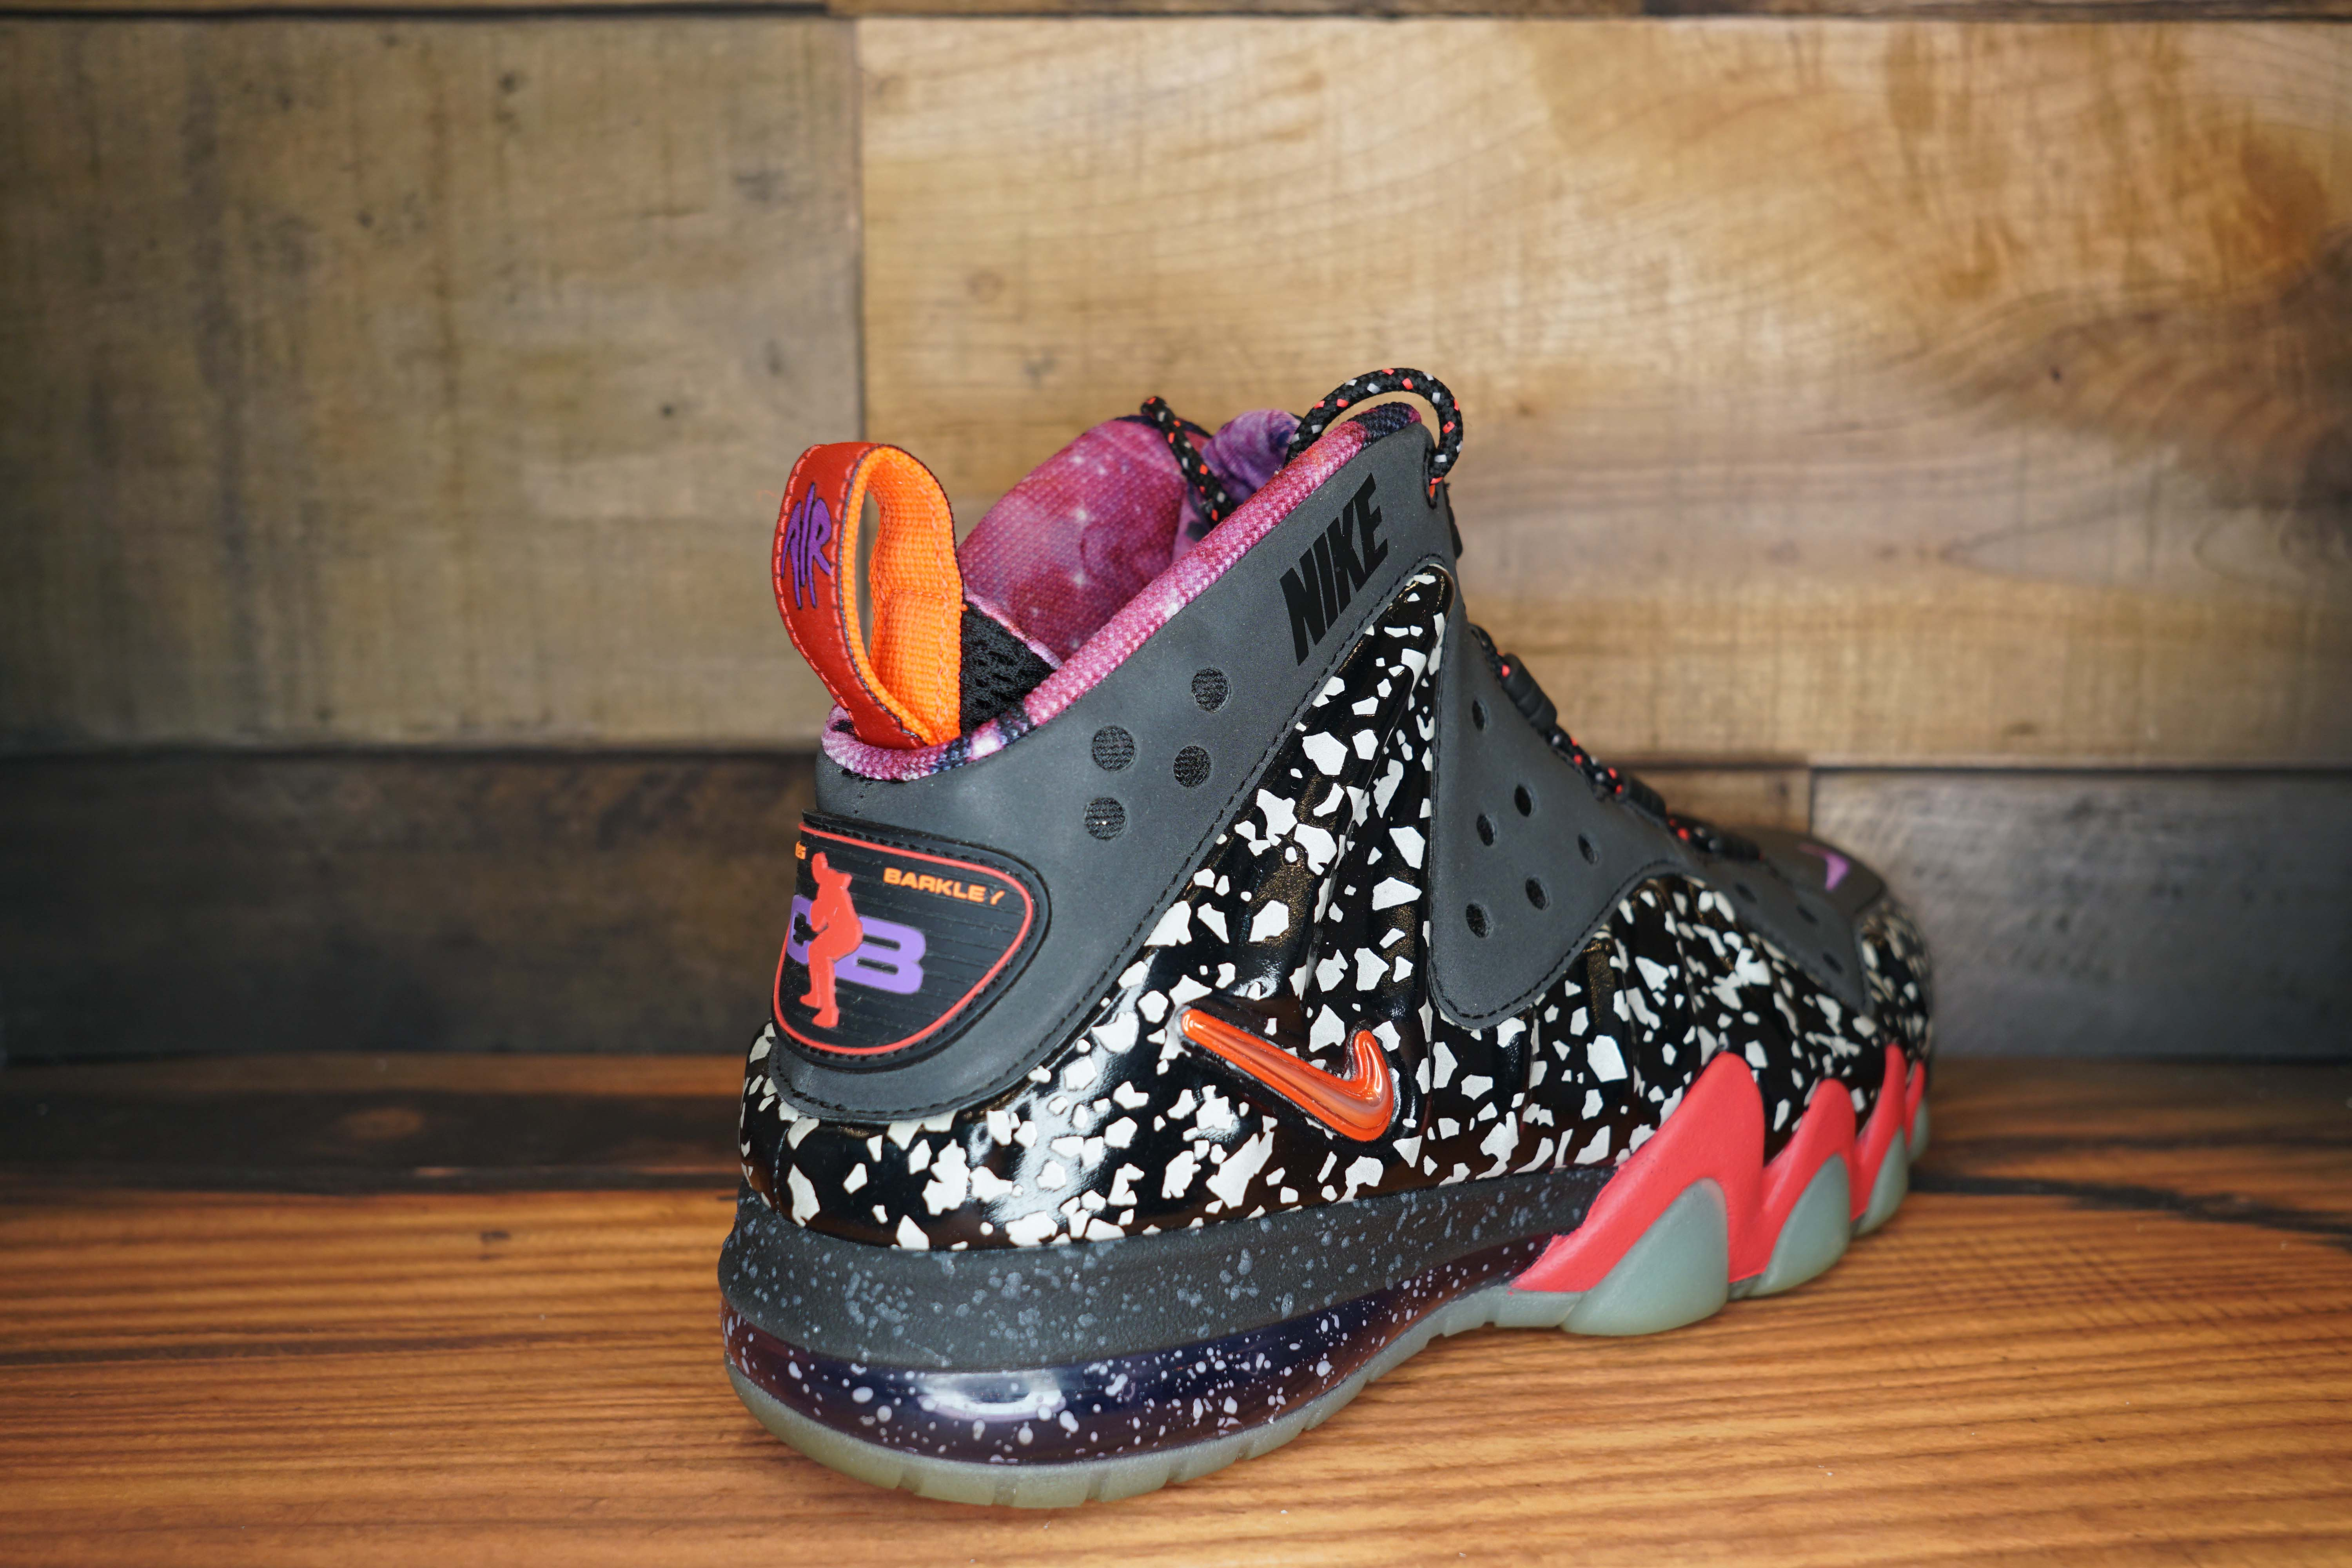 Barkley-Posite-Max-AREA-72-2013-Used-Original-Box-Size-8.5_5112C.jpg